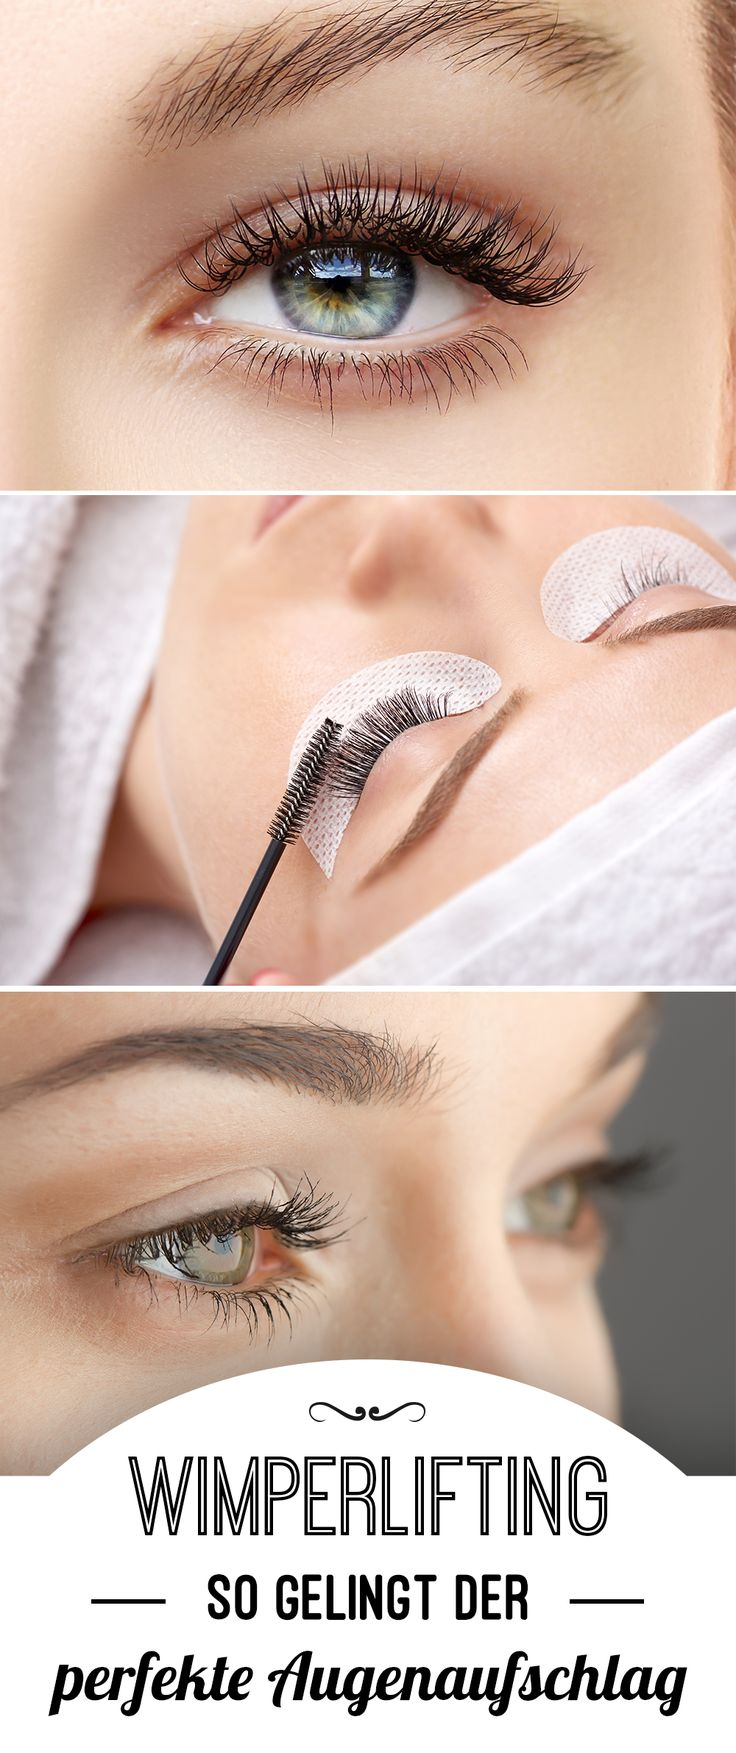 Eyelash Lifting: The perfect swing